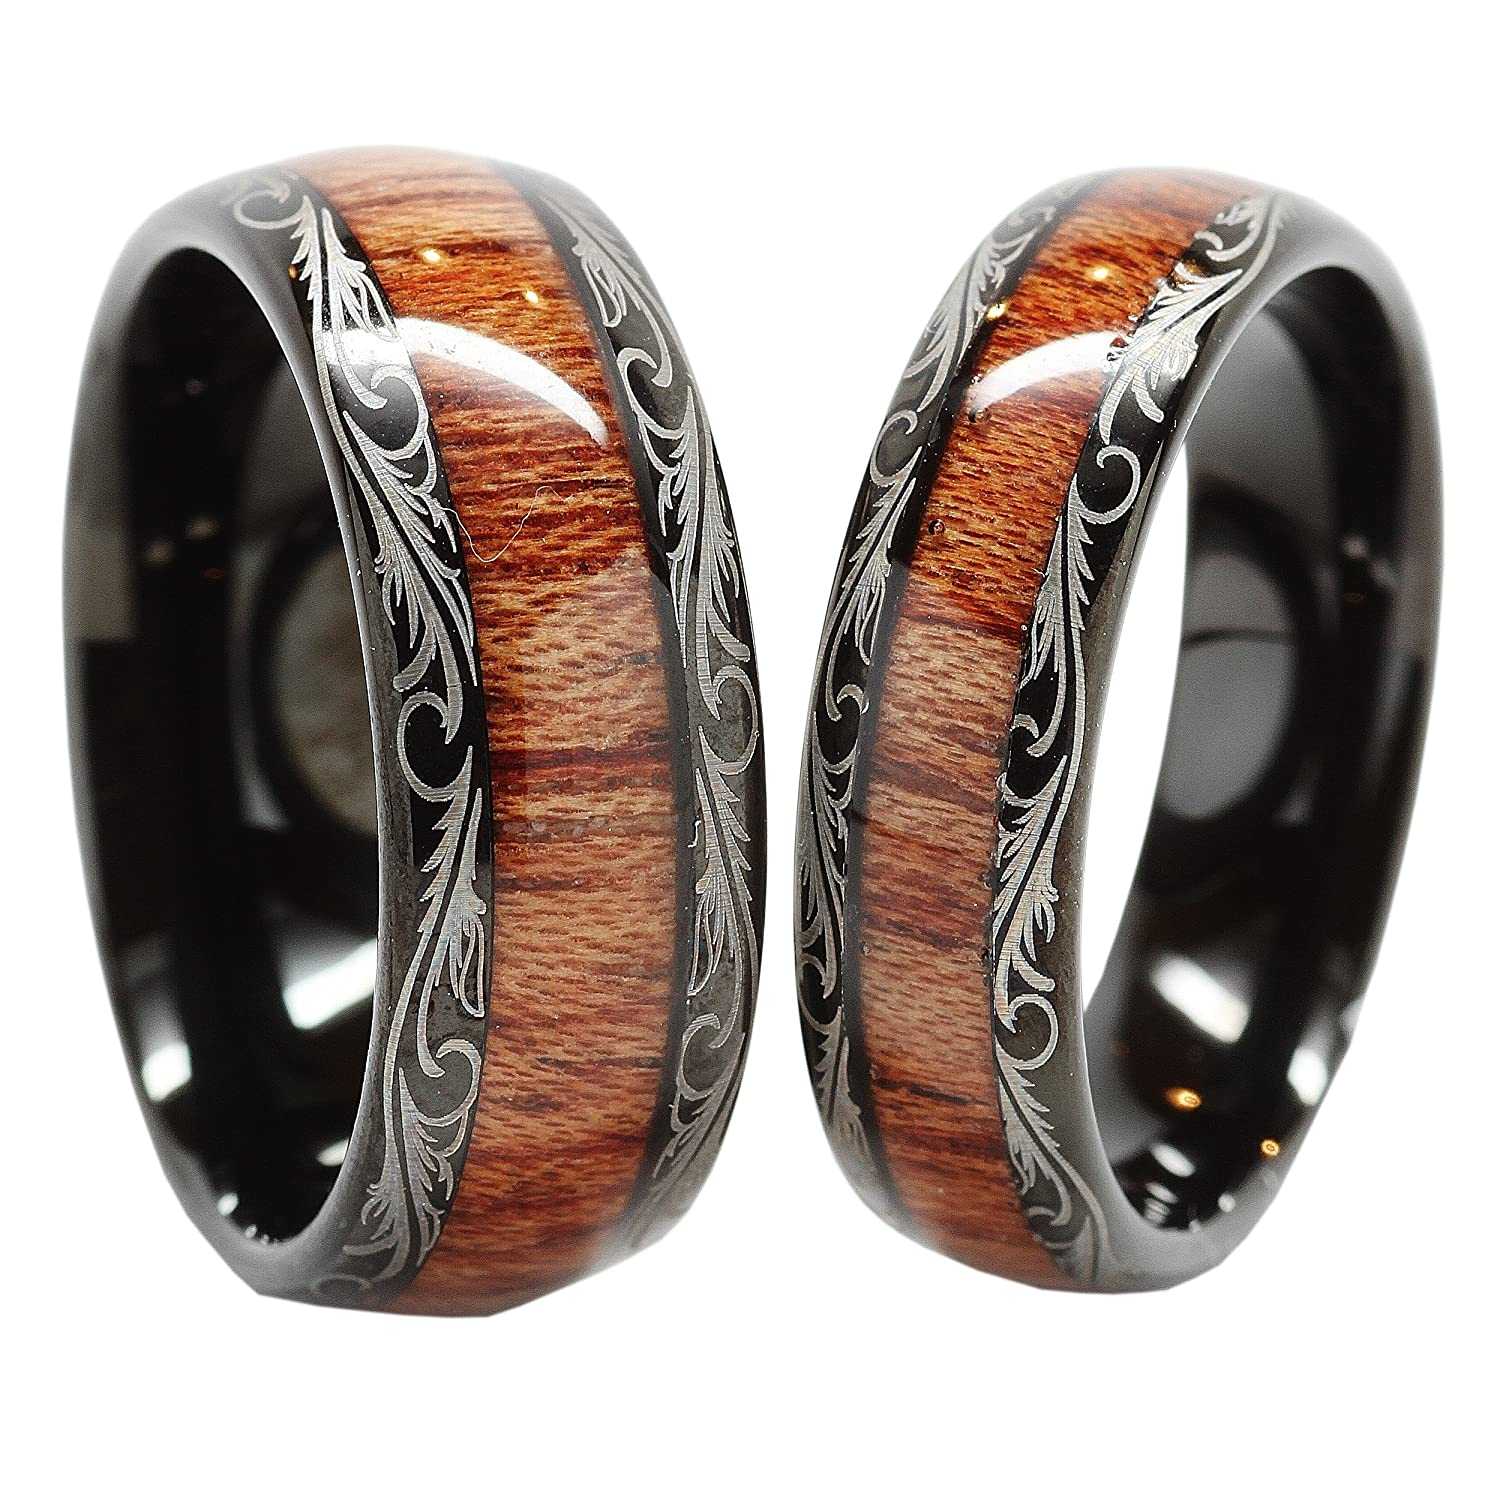 Men Women's Tungsten Carbide Wedding Band Wood Inlay Fort Fit Ring Setamazon: Wooden Inlay Wedding Band At Websimilar.org